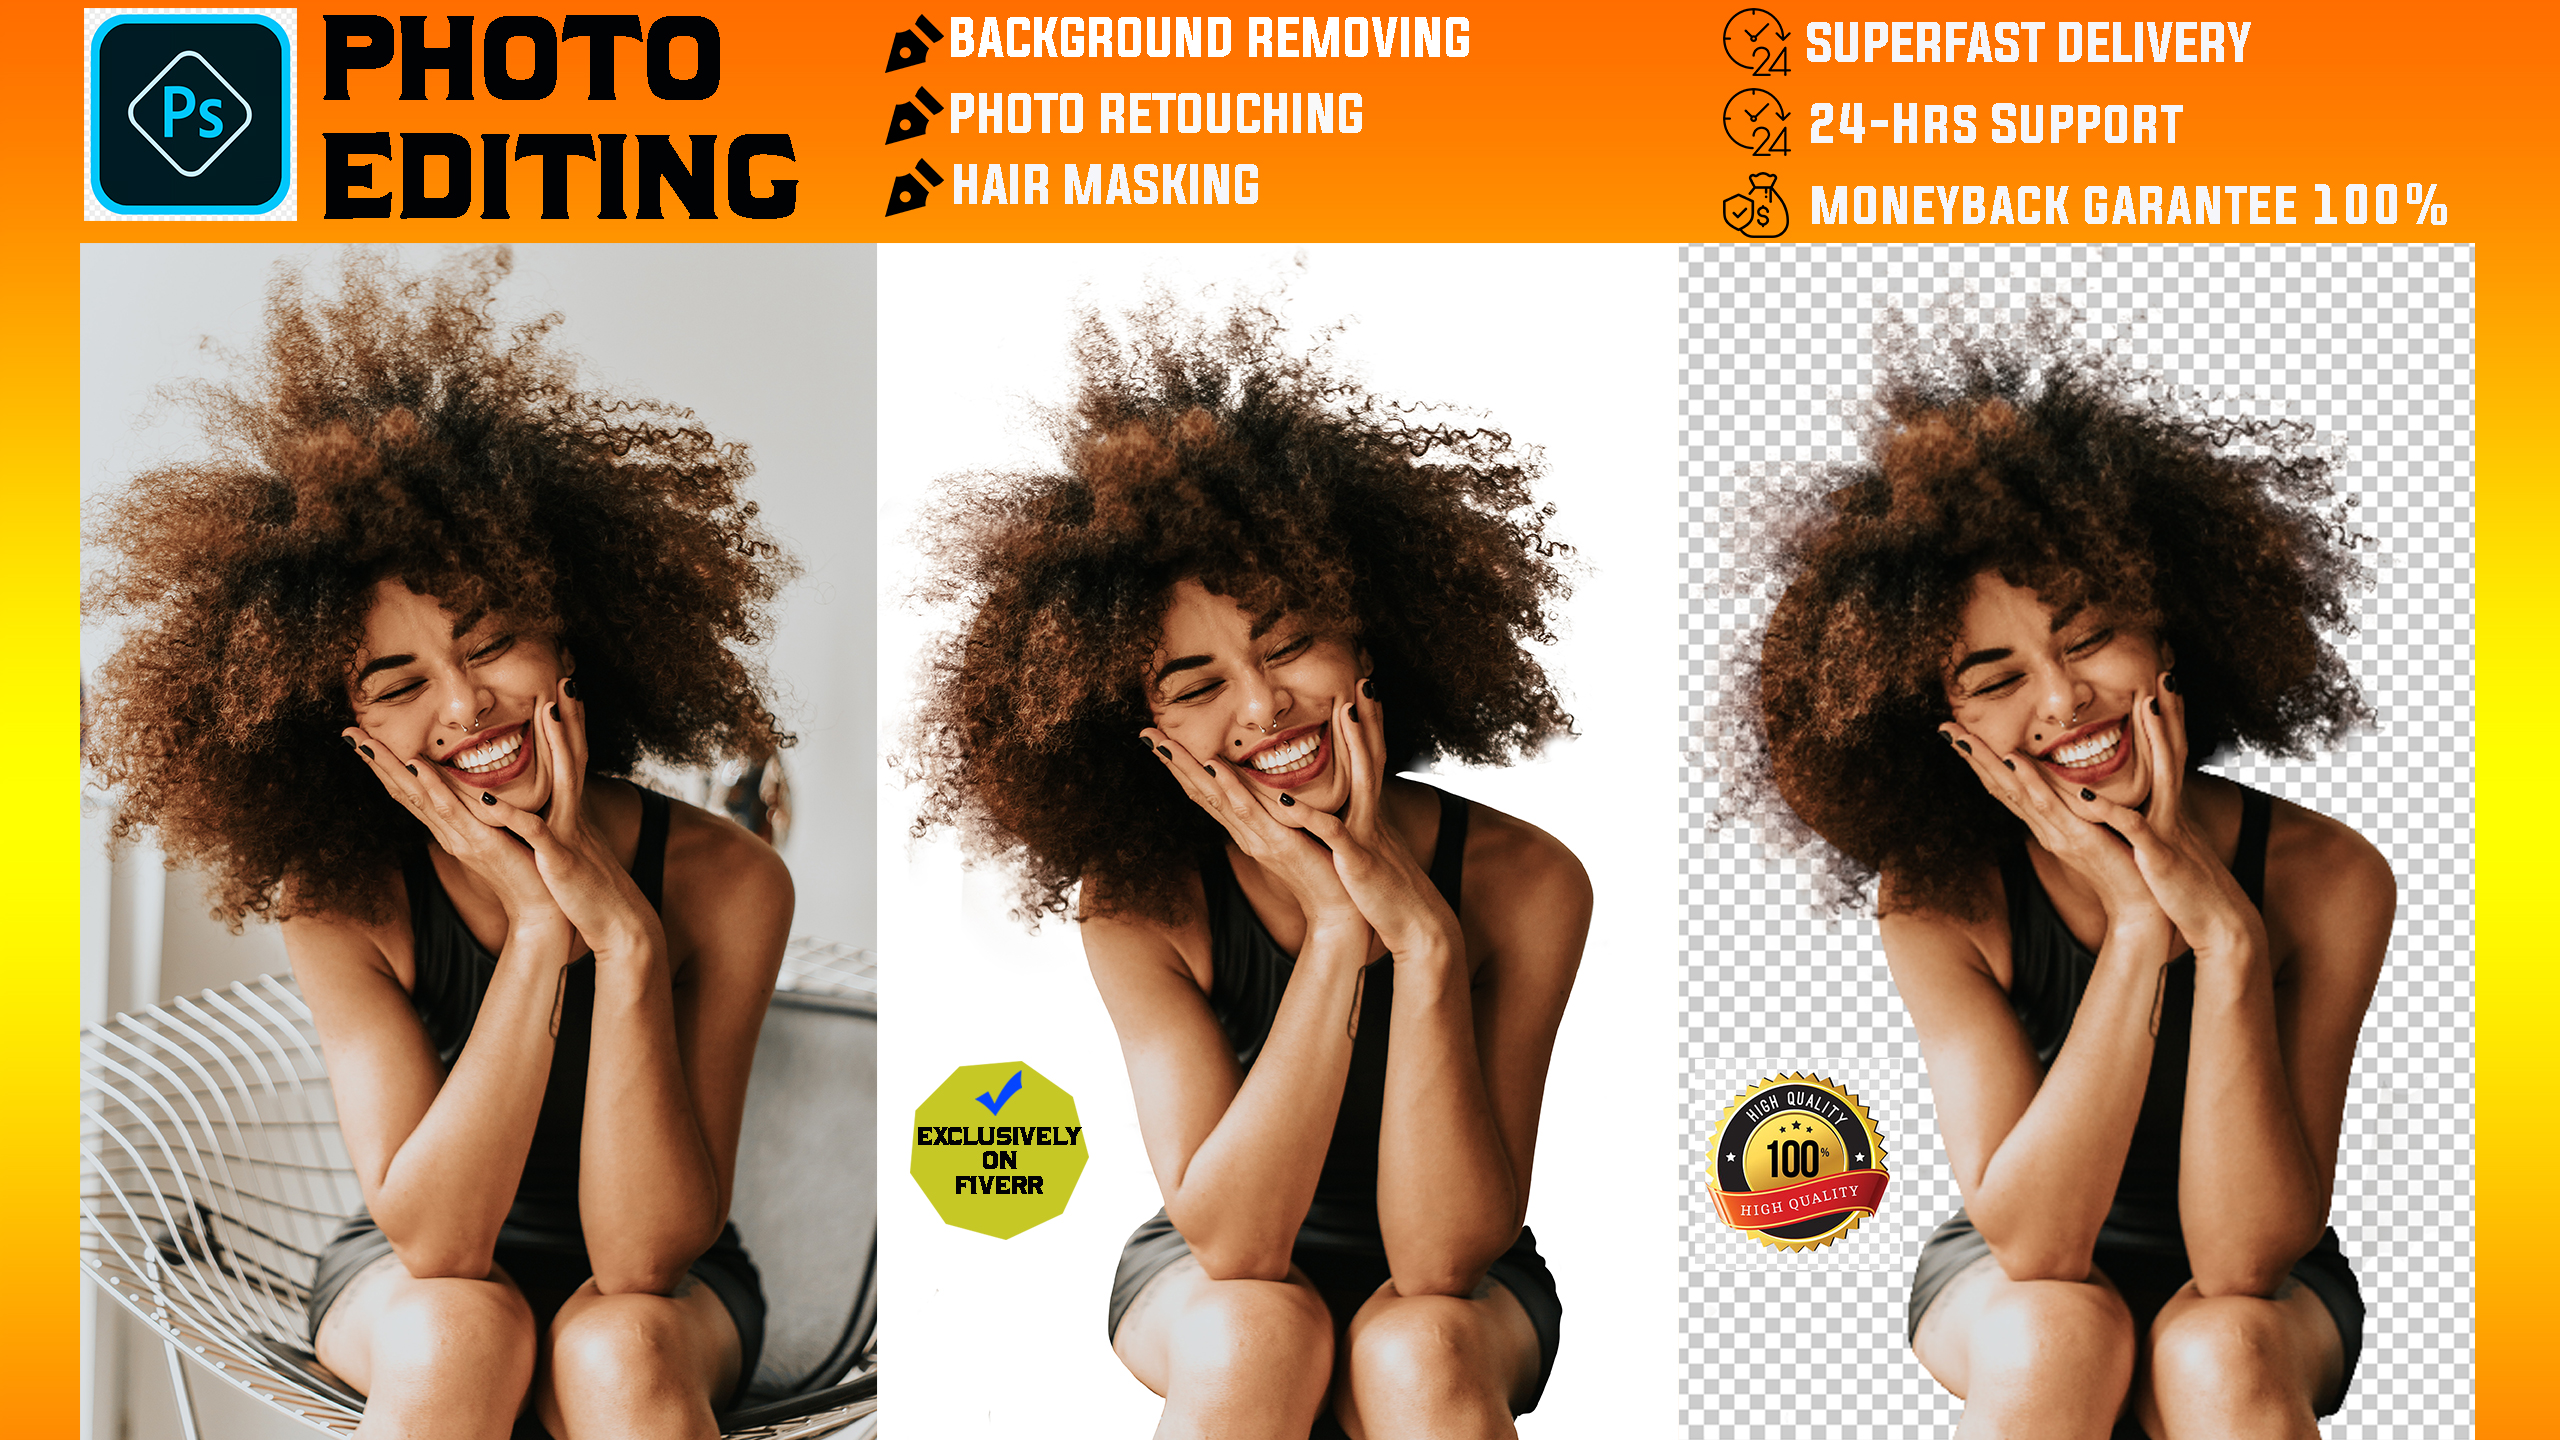 I will provide any image background remove within 12 hours